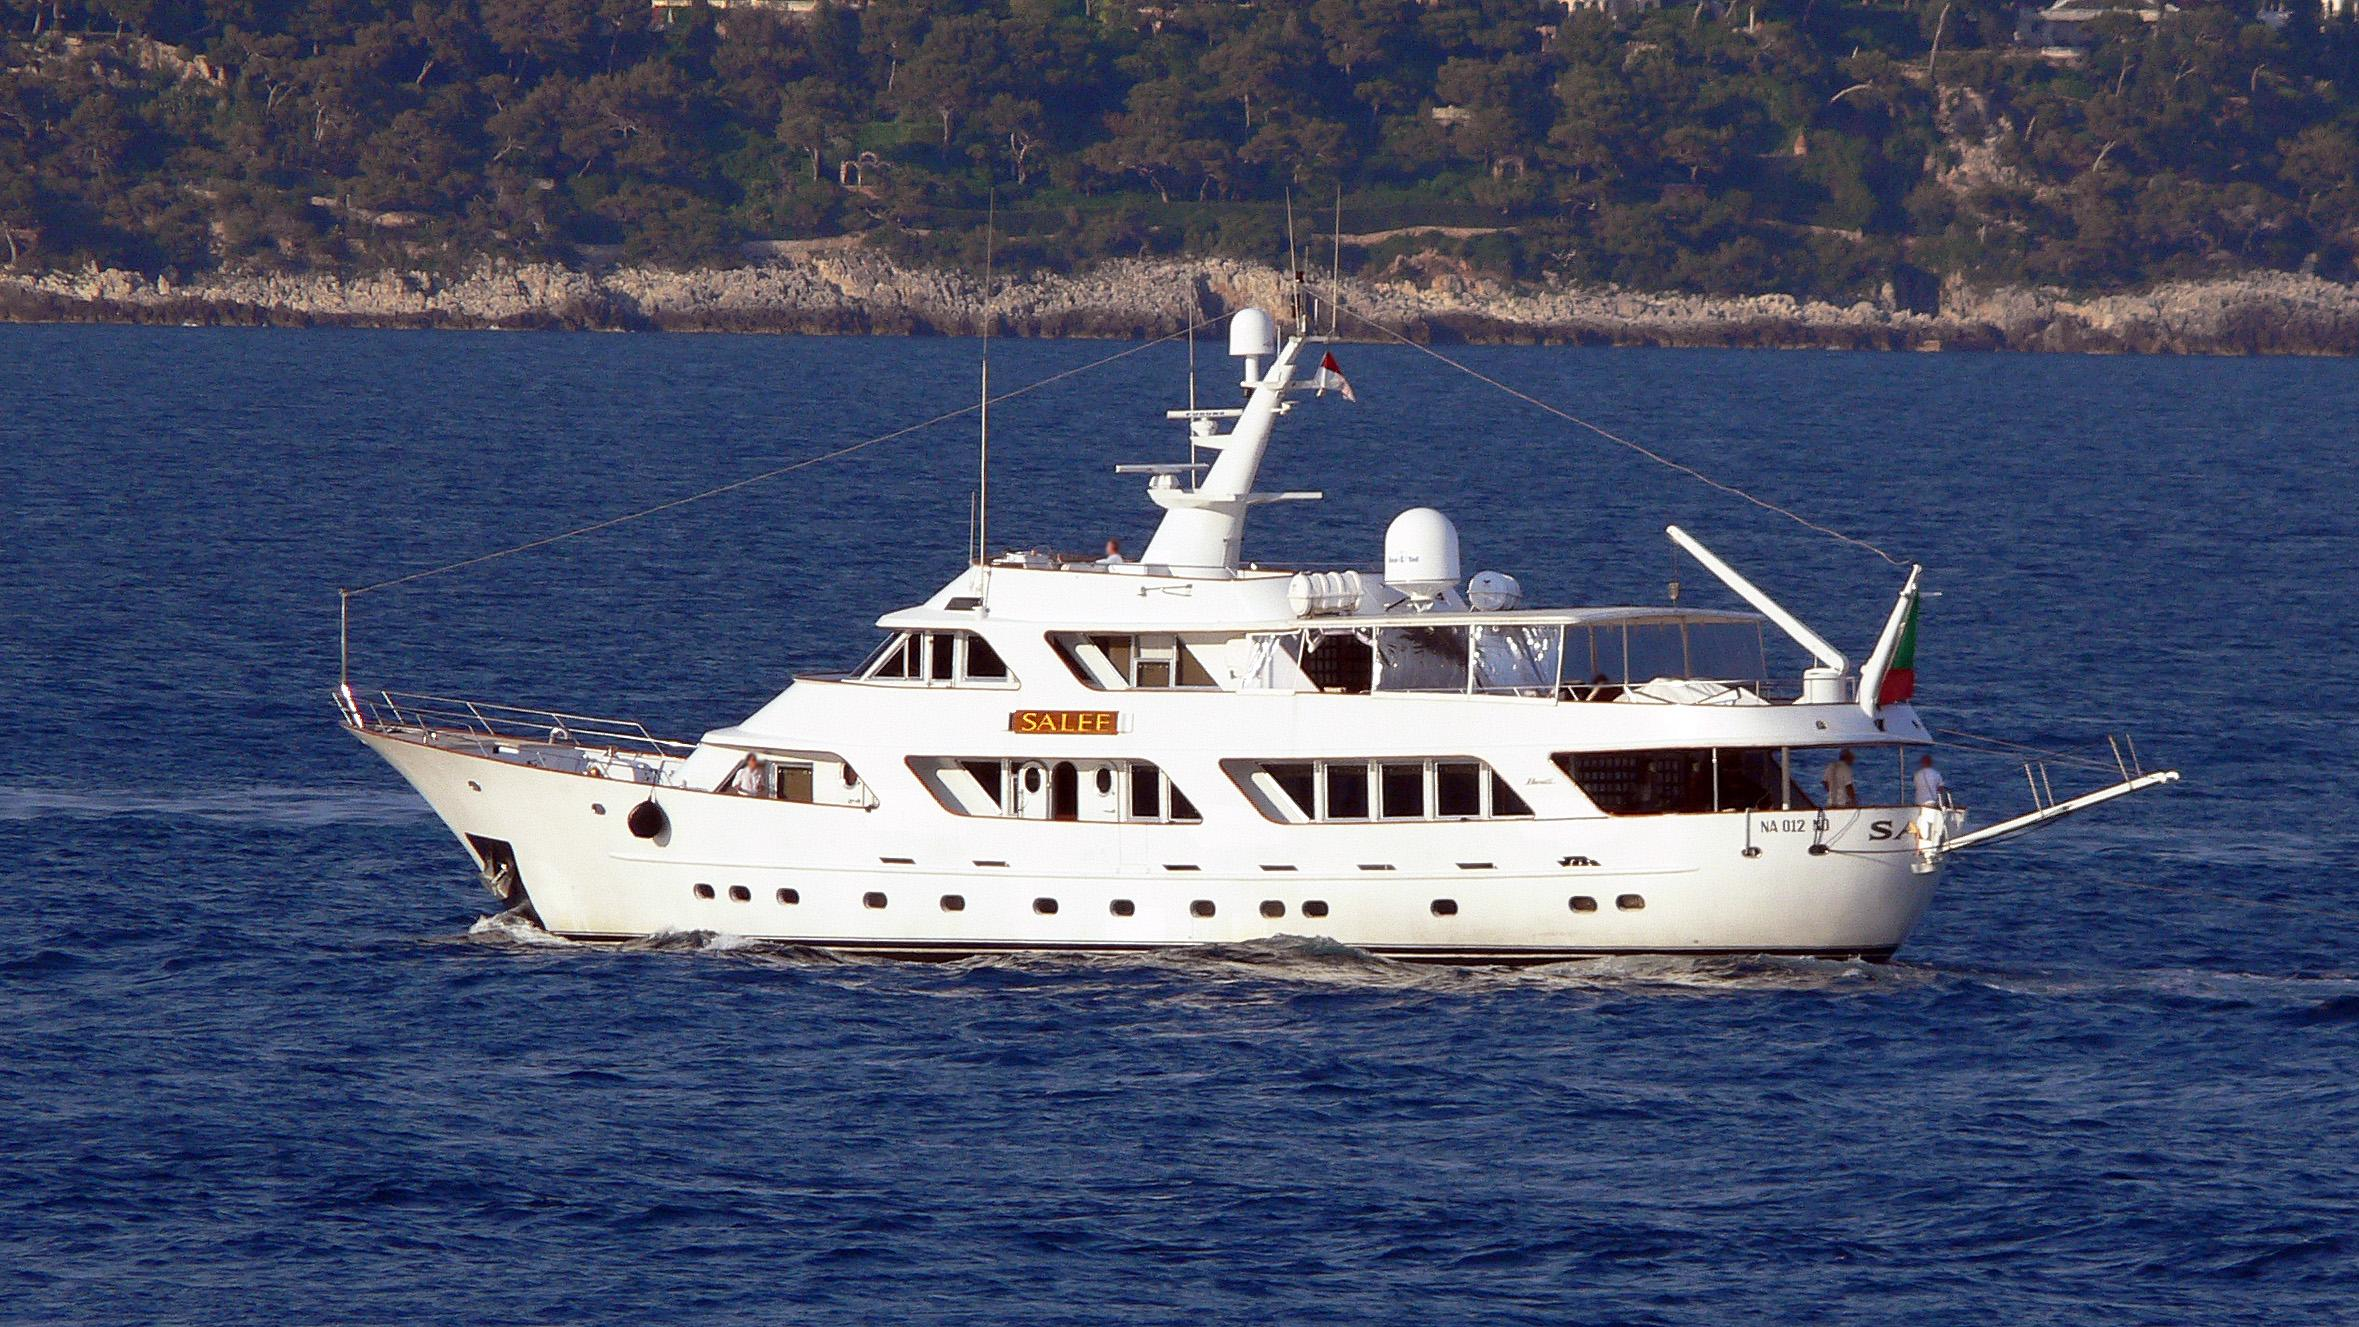 to-je-to-salee-motor-yacht-benetti-1981-35m-profile-stern